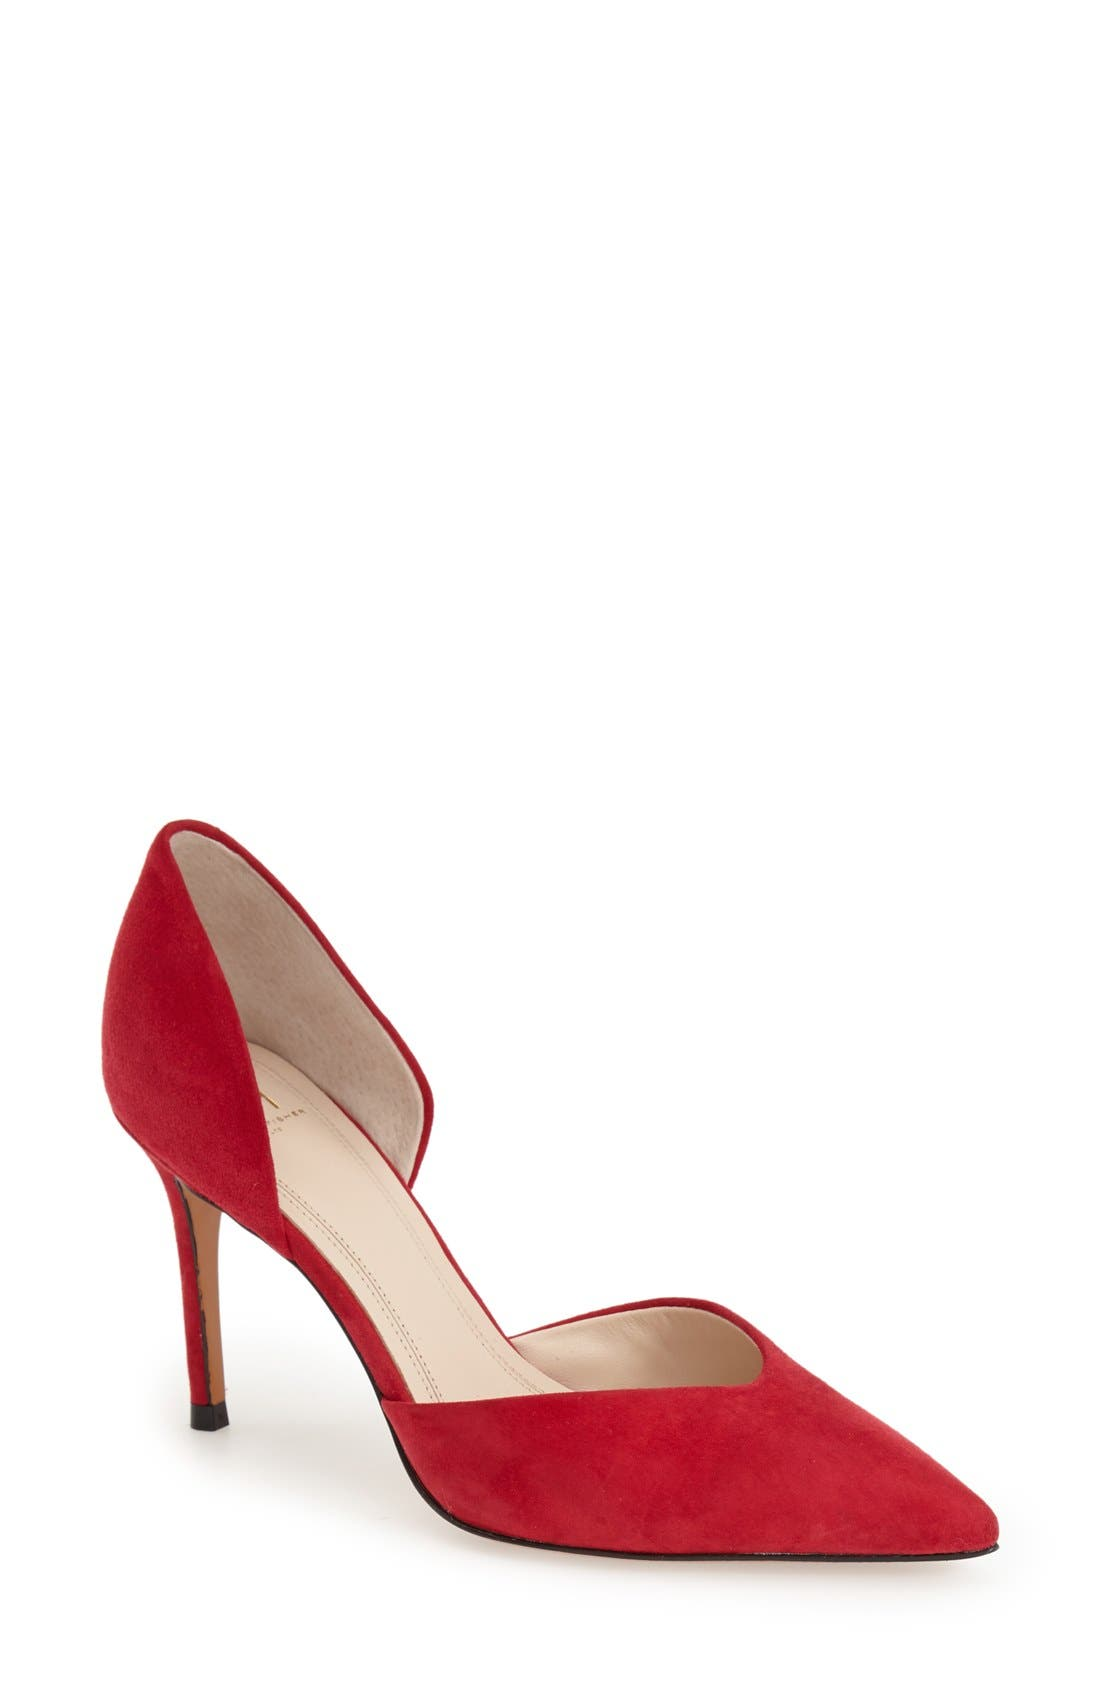 Alternate Image 1 Selected - Marc Fisher LTD 'Tammy' d'Orsay Pump (Women)